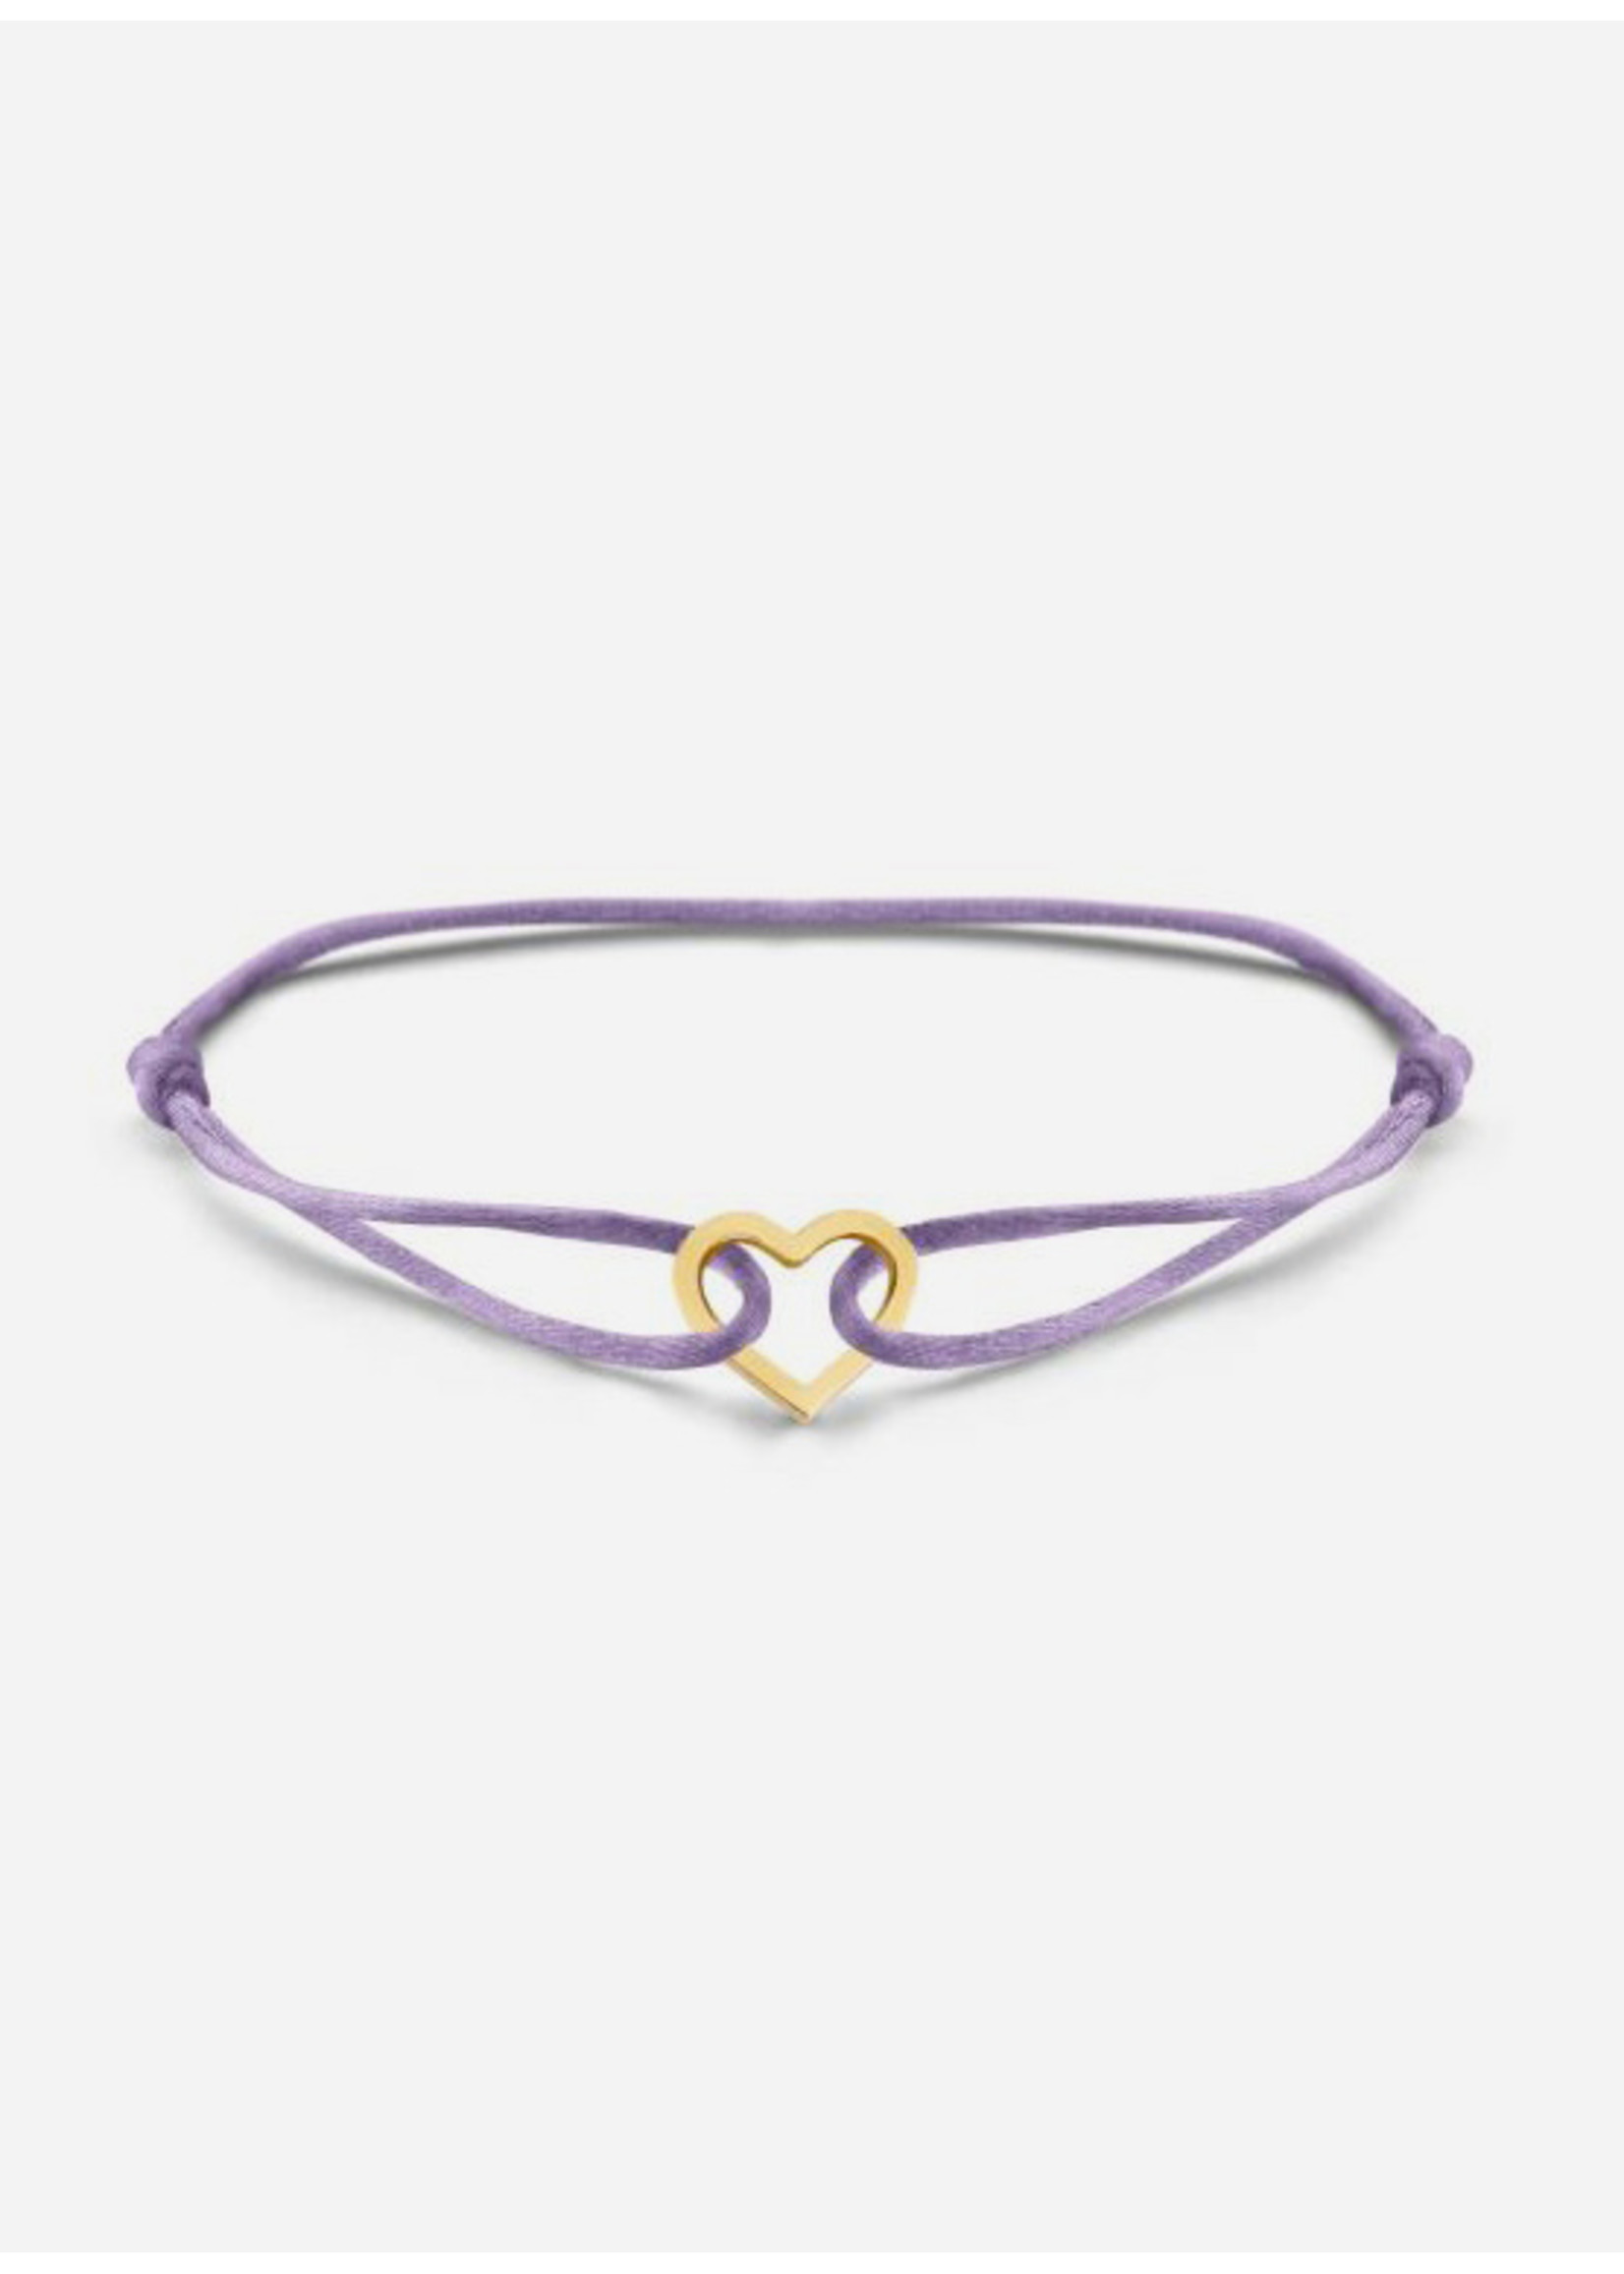 Just Franky Iconic bracelet heart cord